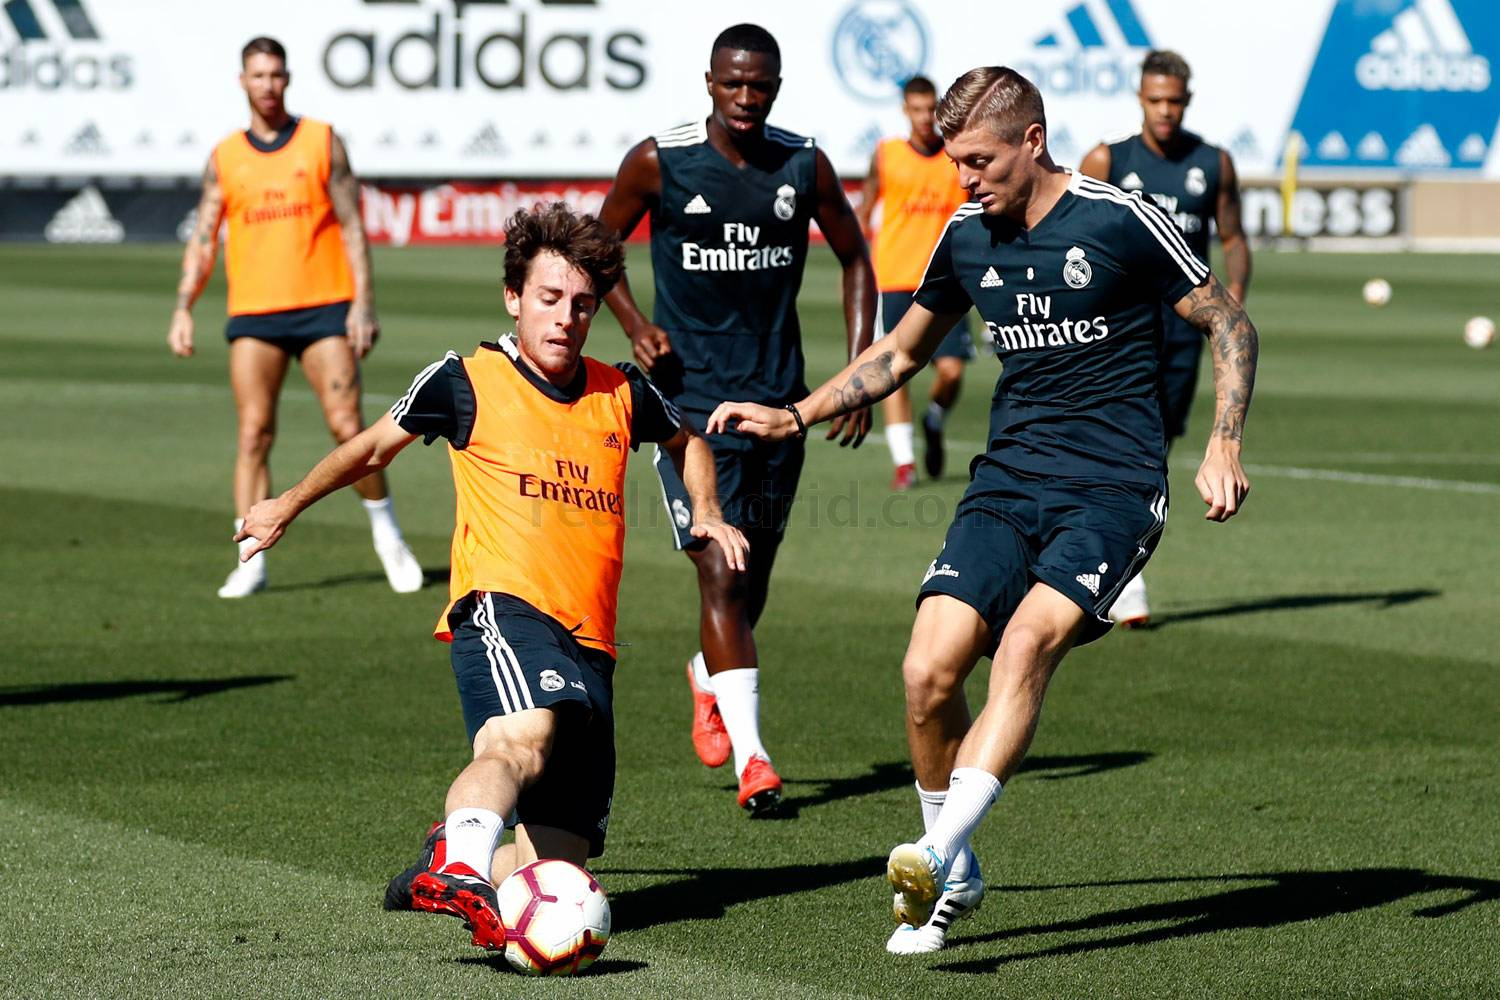 Real Madrid - Entrenamiento del Real Madrid - 28-09-2018